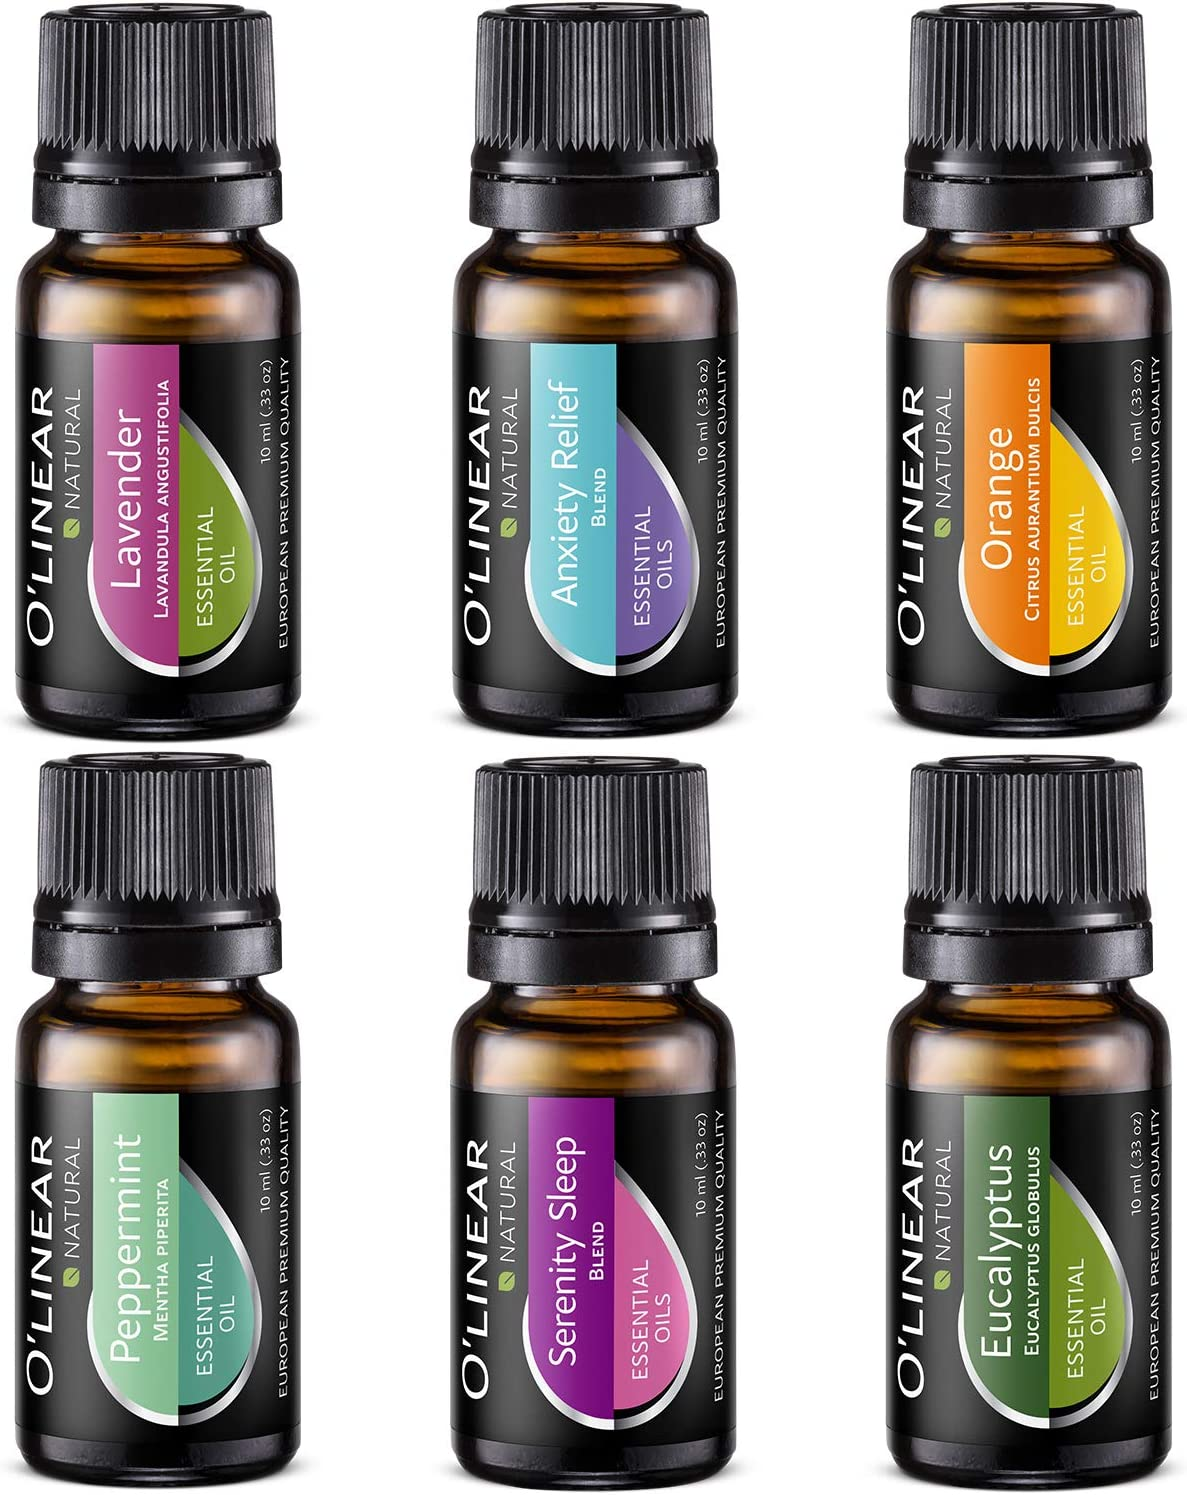 Essential Oils Set - Top 6 (4 Oils & 2 Blends) Essential Oils for Diffusers for Home, Aromatherapy Humidifiers and Soul - Anxiety Relief, Sleep, Peppermint Oil, Orange, Lavender, Eucalyptus